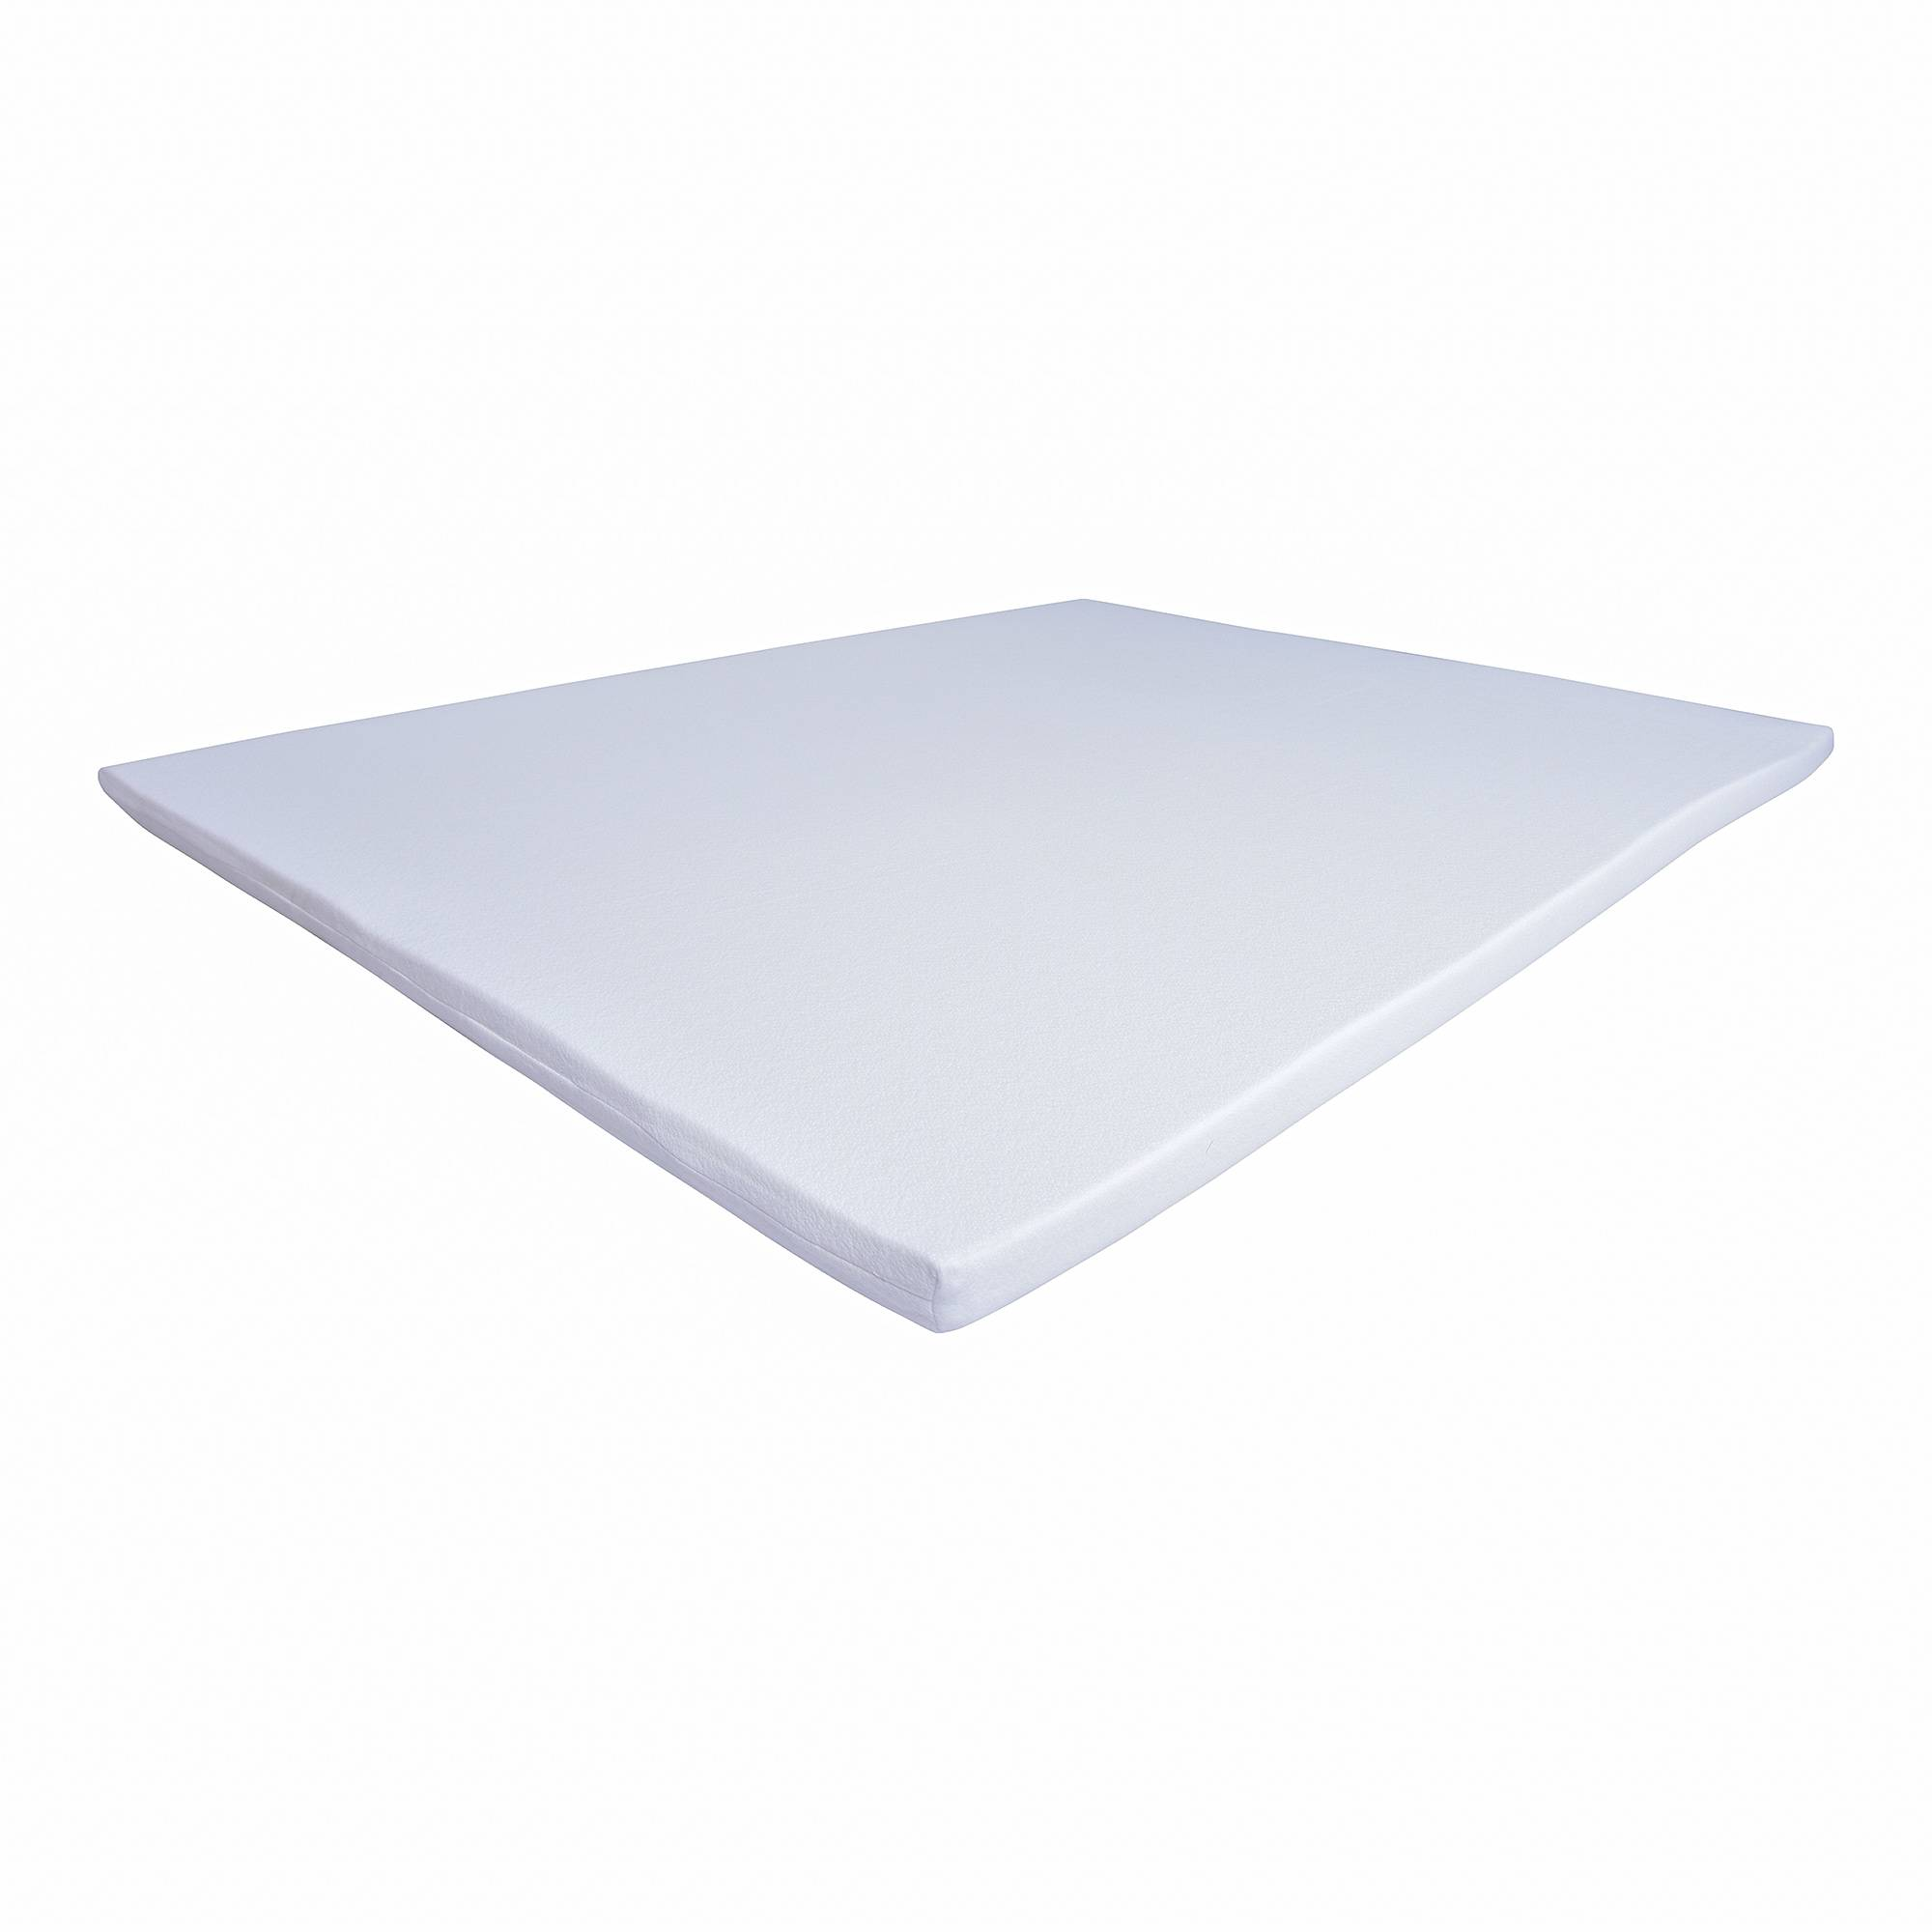 Memory Foam Topper Mattress pad